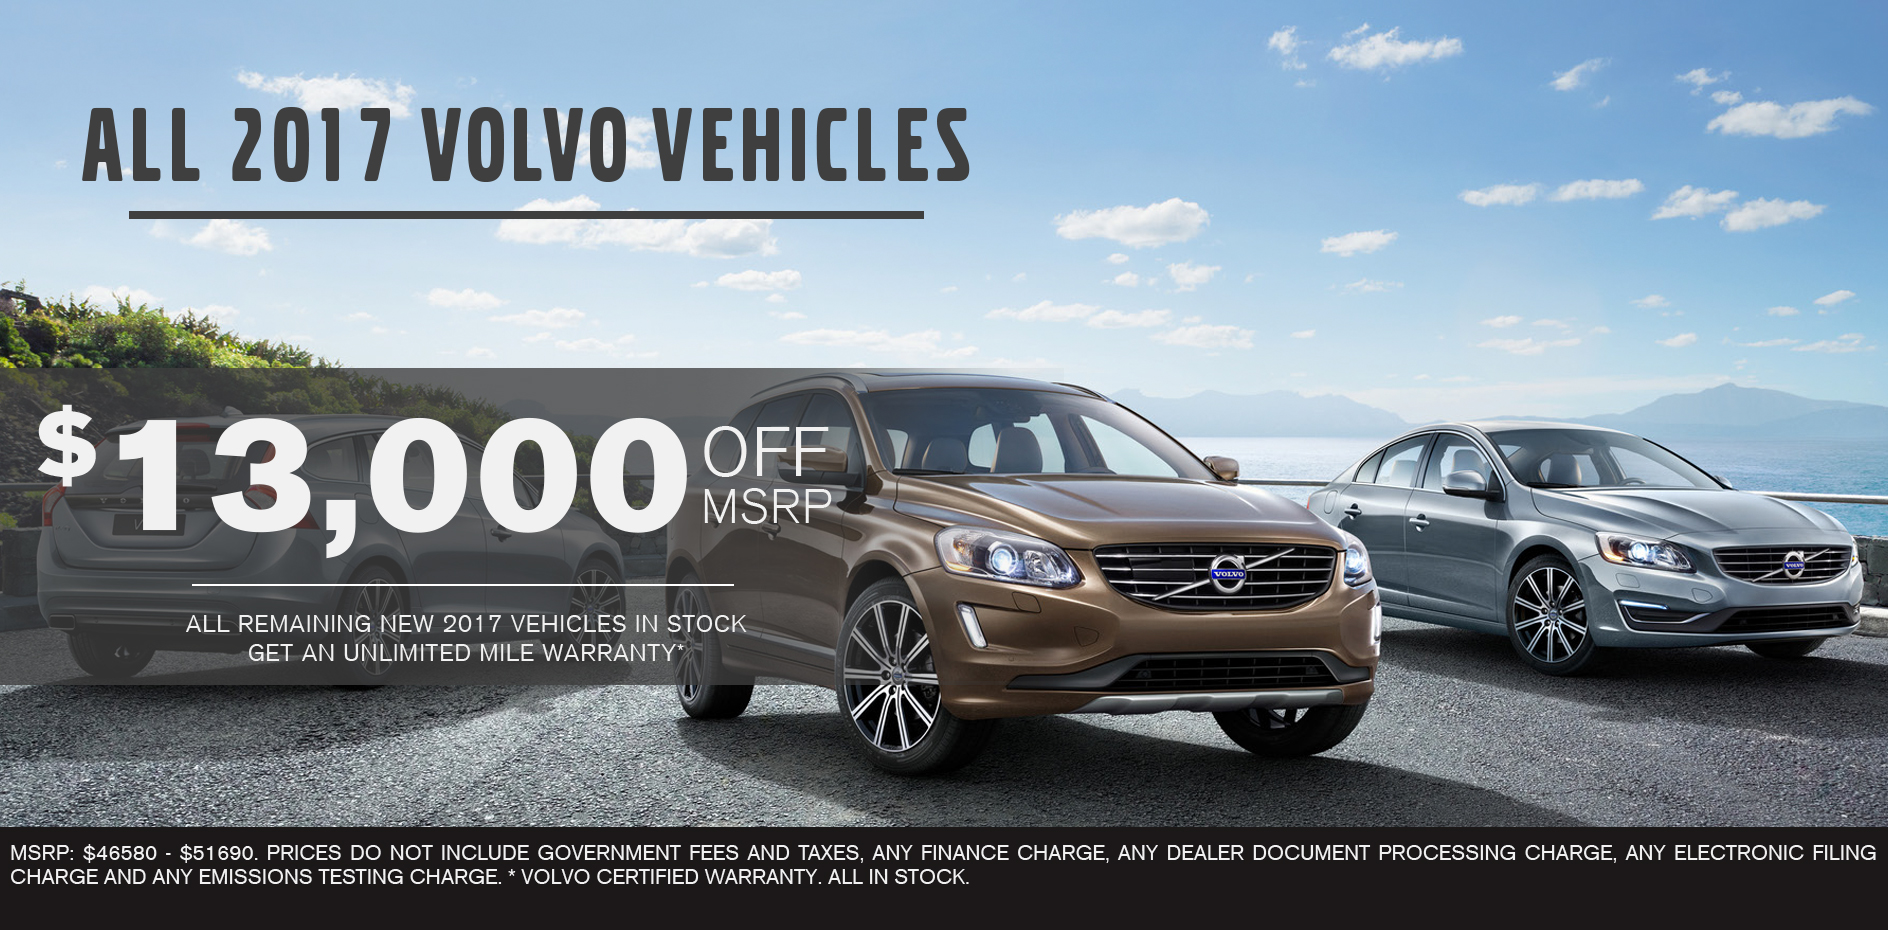 All 2017 Volvo Vehicles